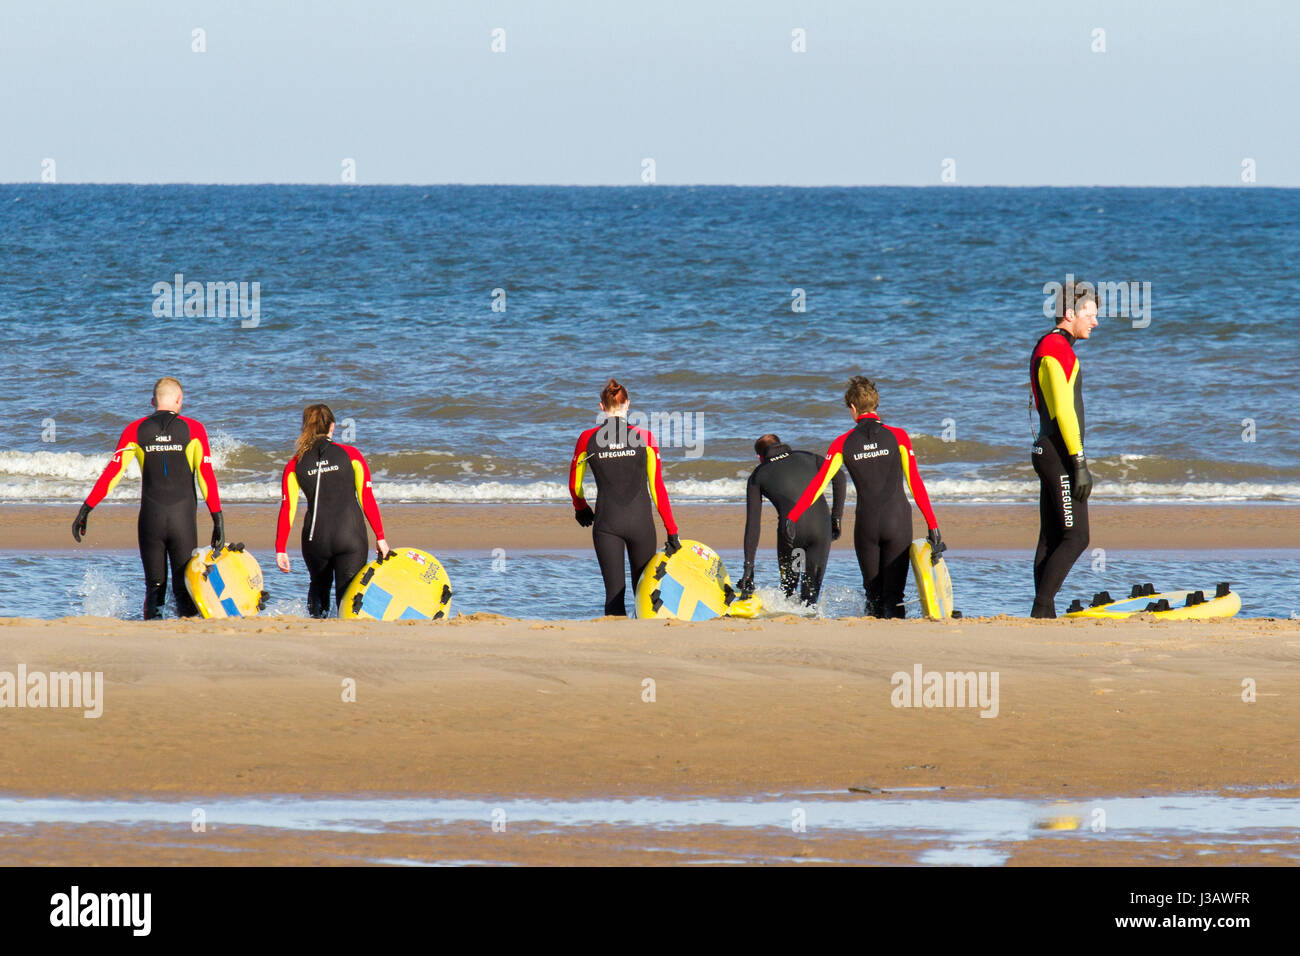 5fe239b9e2 rnli lifeguard sea save rescue rescuer emergency drown drowning water tide  tides safety coast swim swimmer